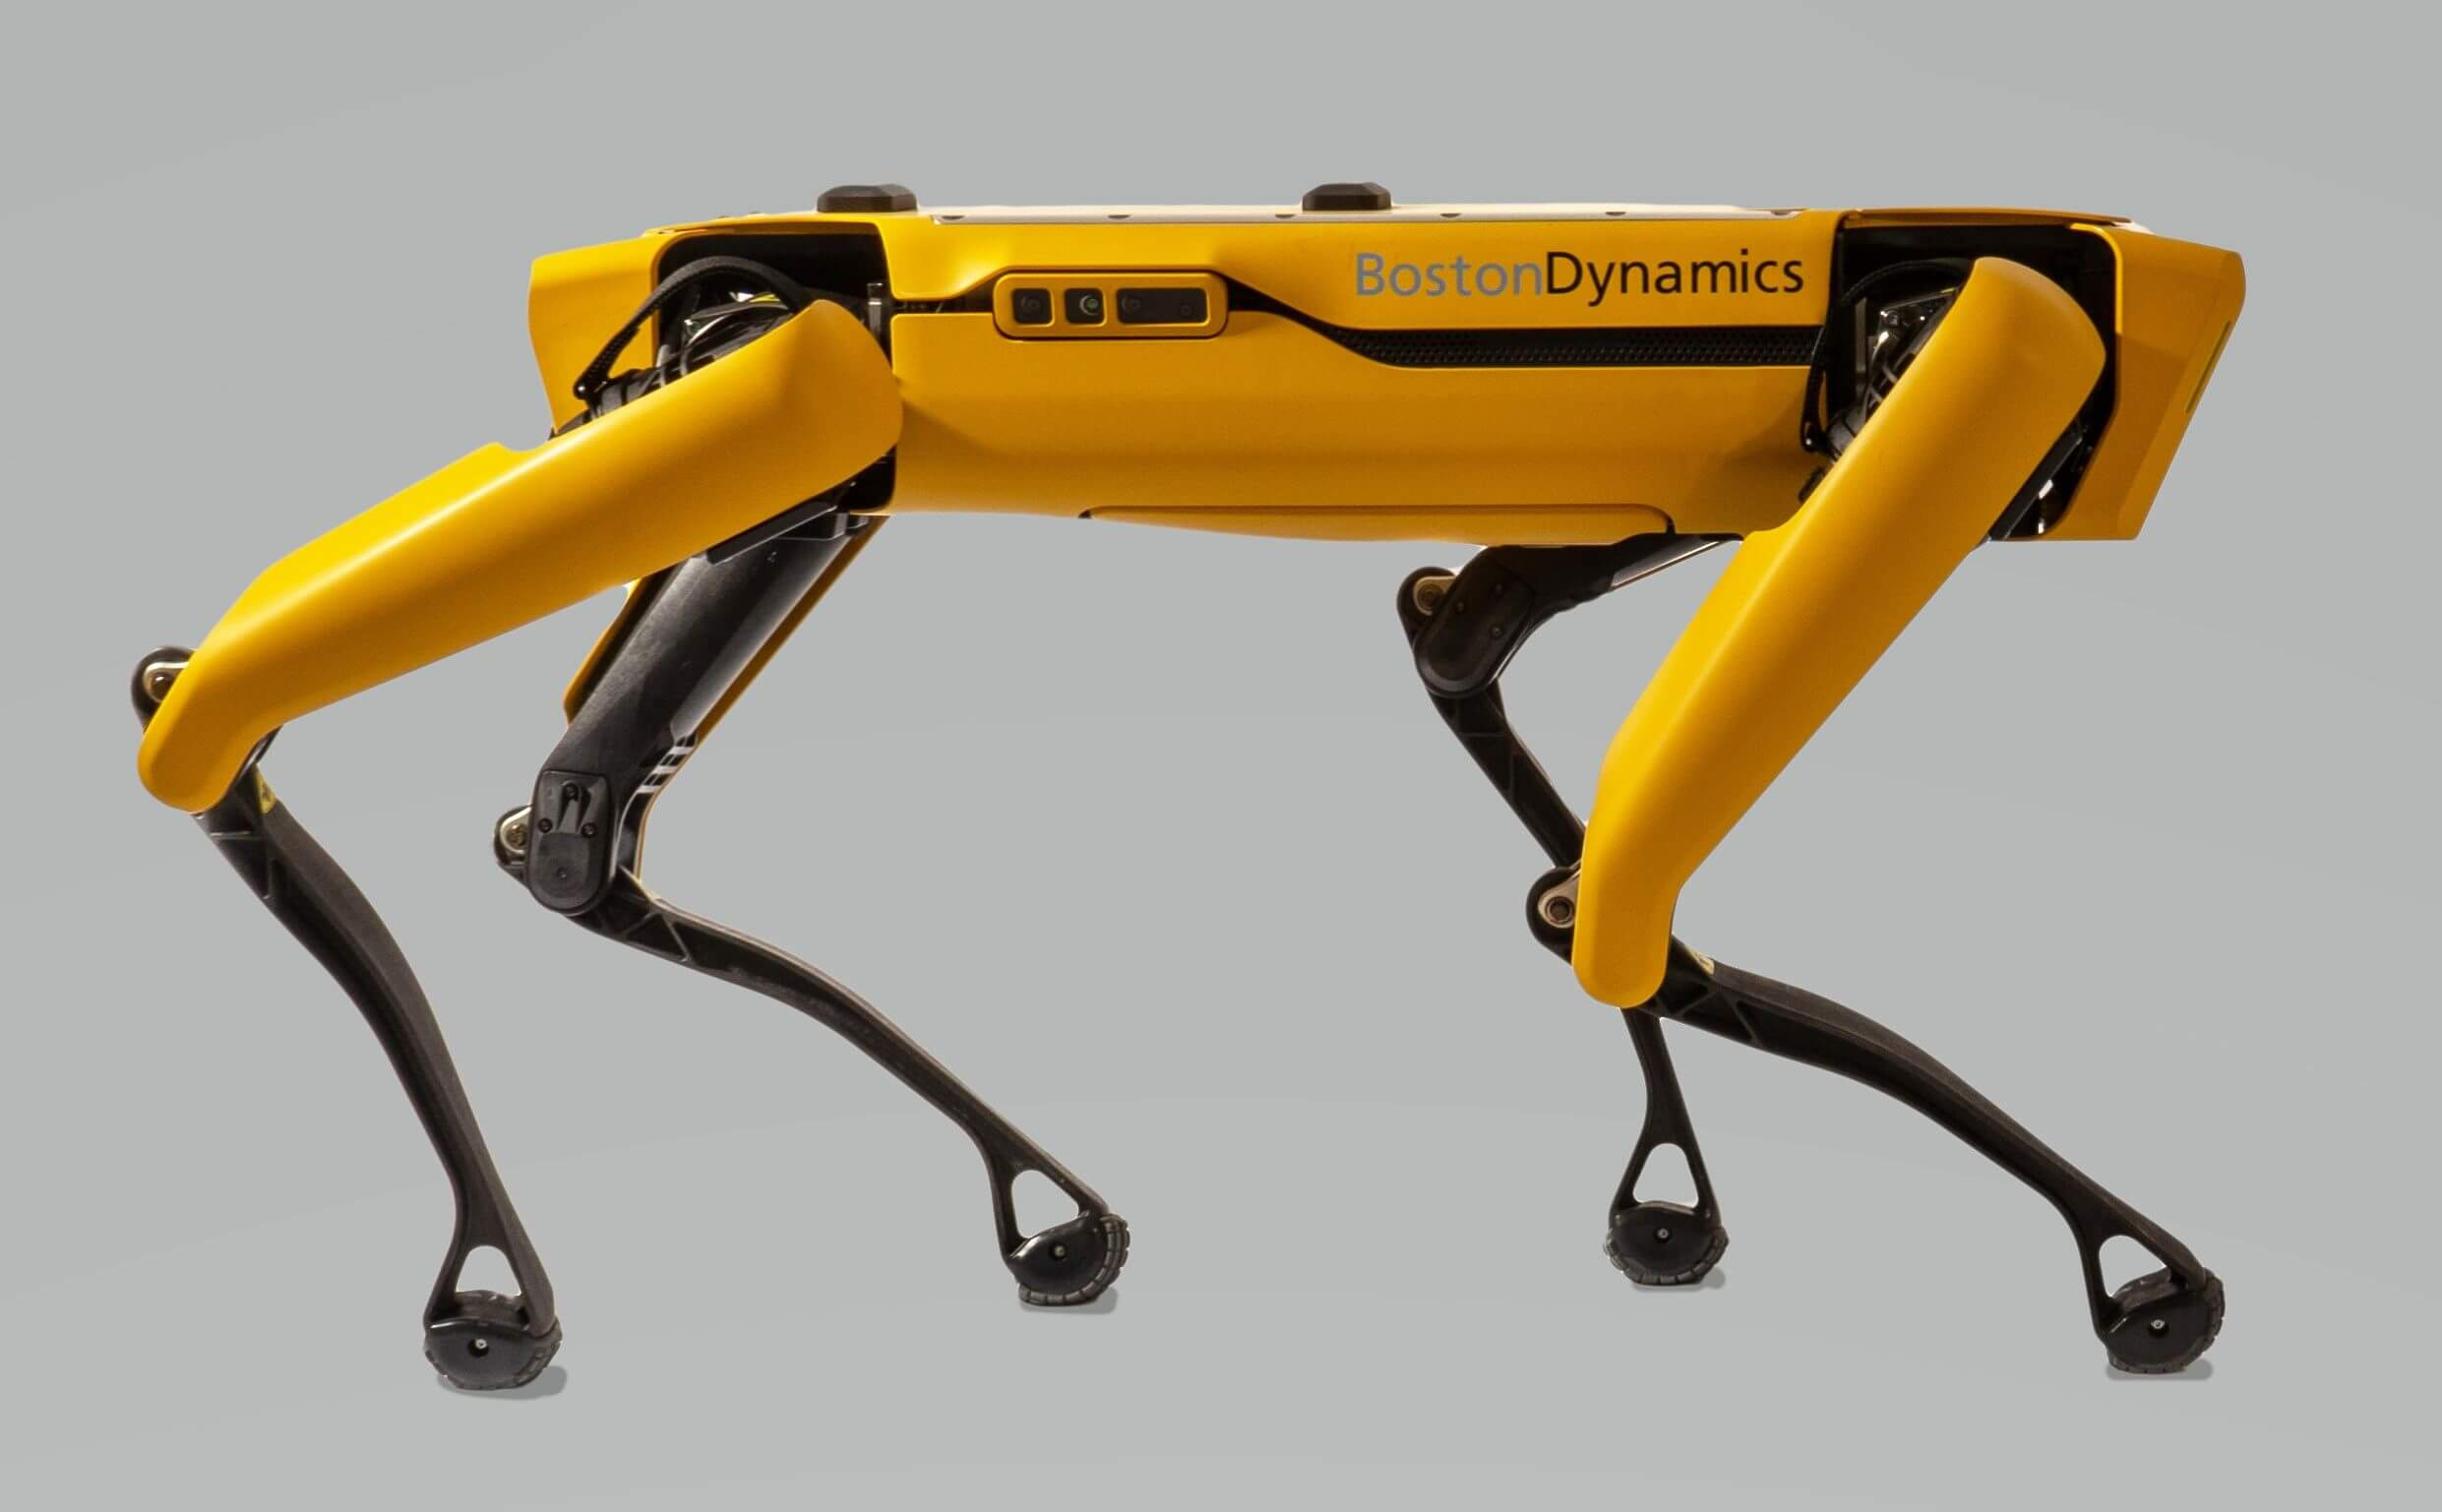 Hyundai confirms $880 million acquisition of Boston Dynamics